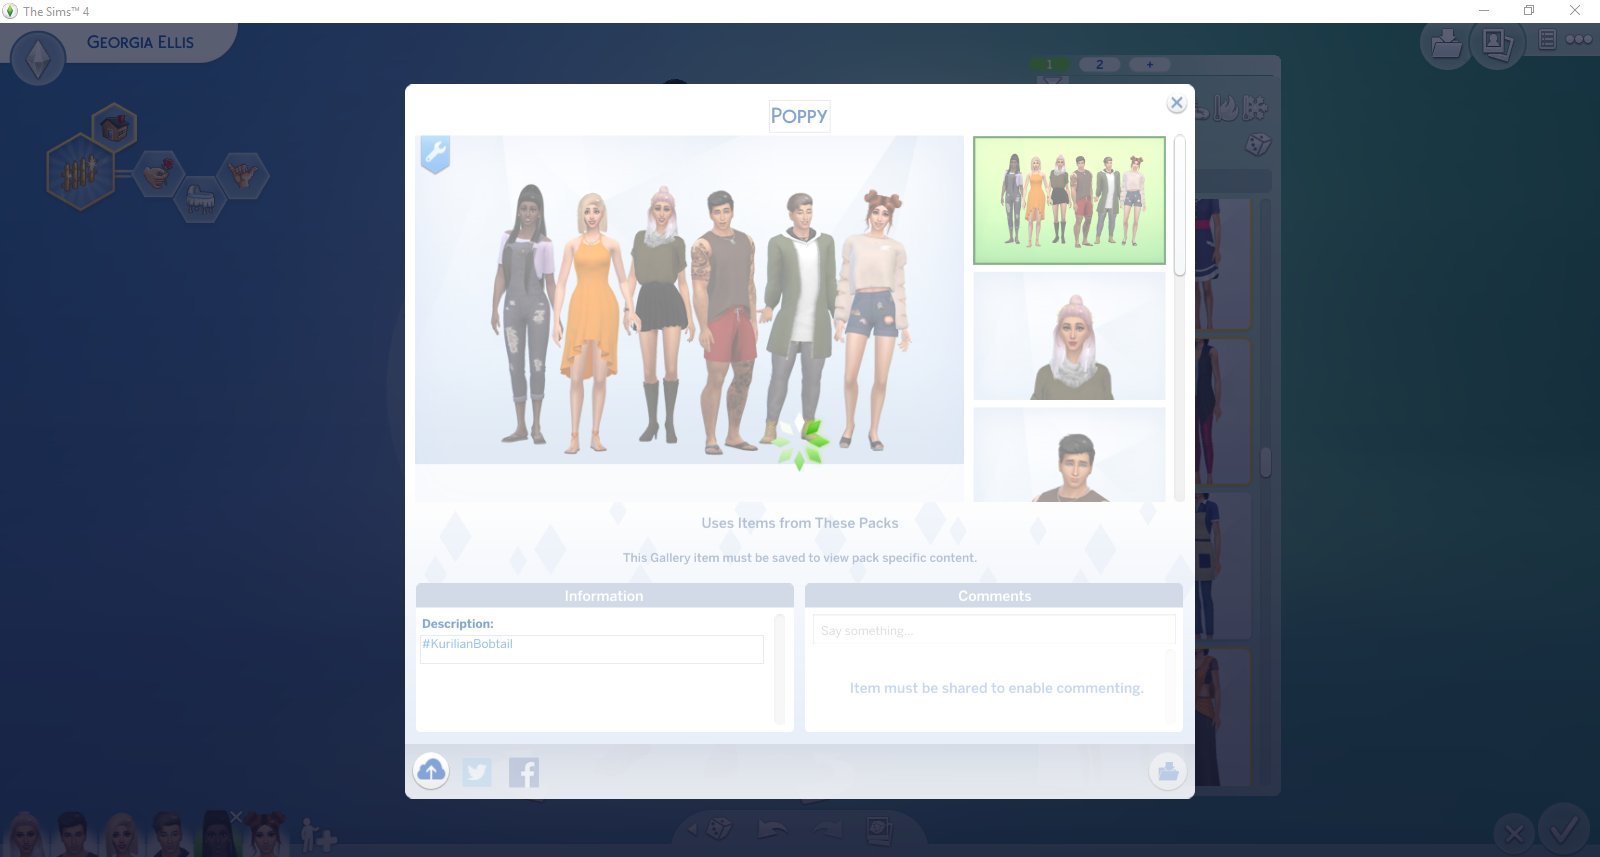 Solved: HELP! - I'm uploading my family to the gallery and